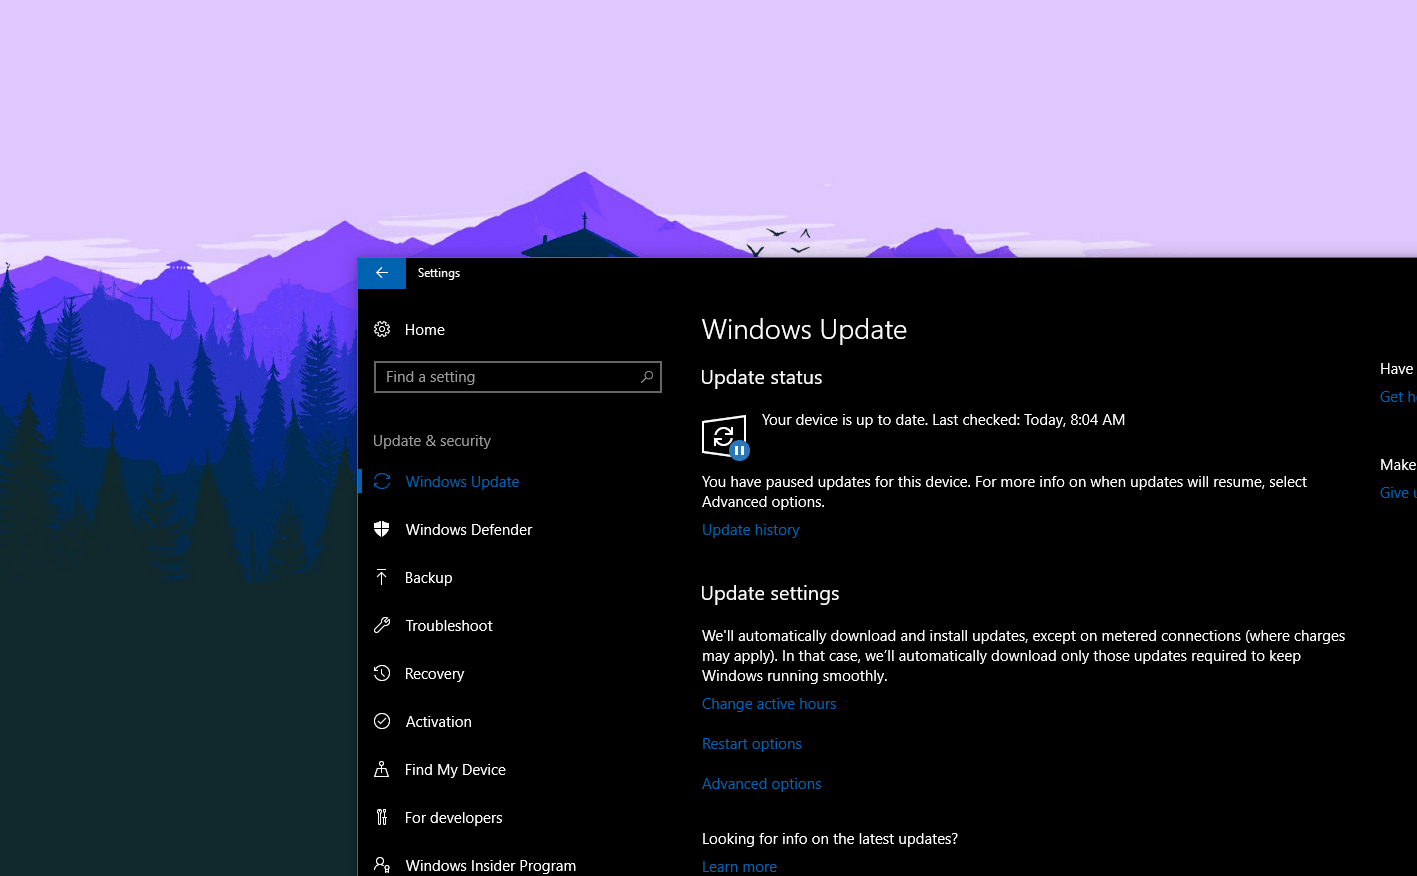 Windows Phone's terminal wind-down: Microsoft sets new sunset dates